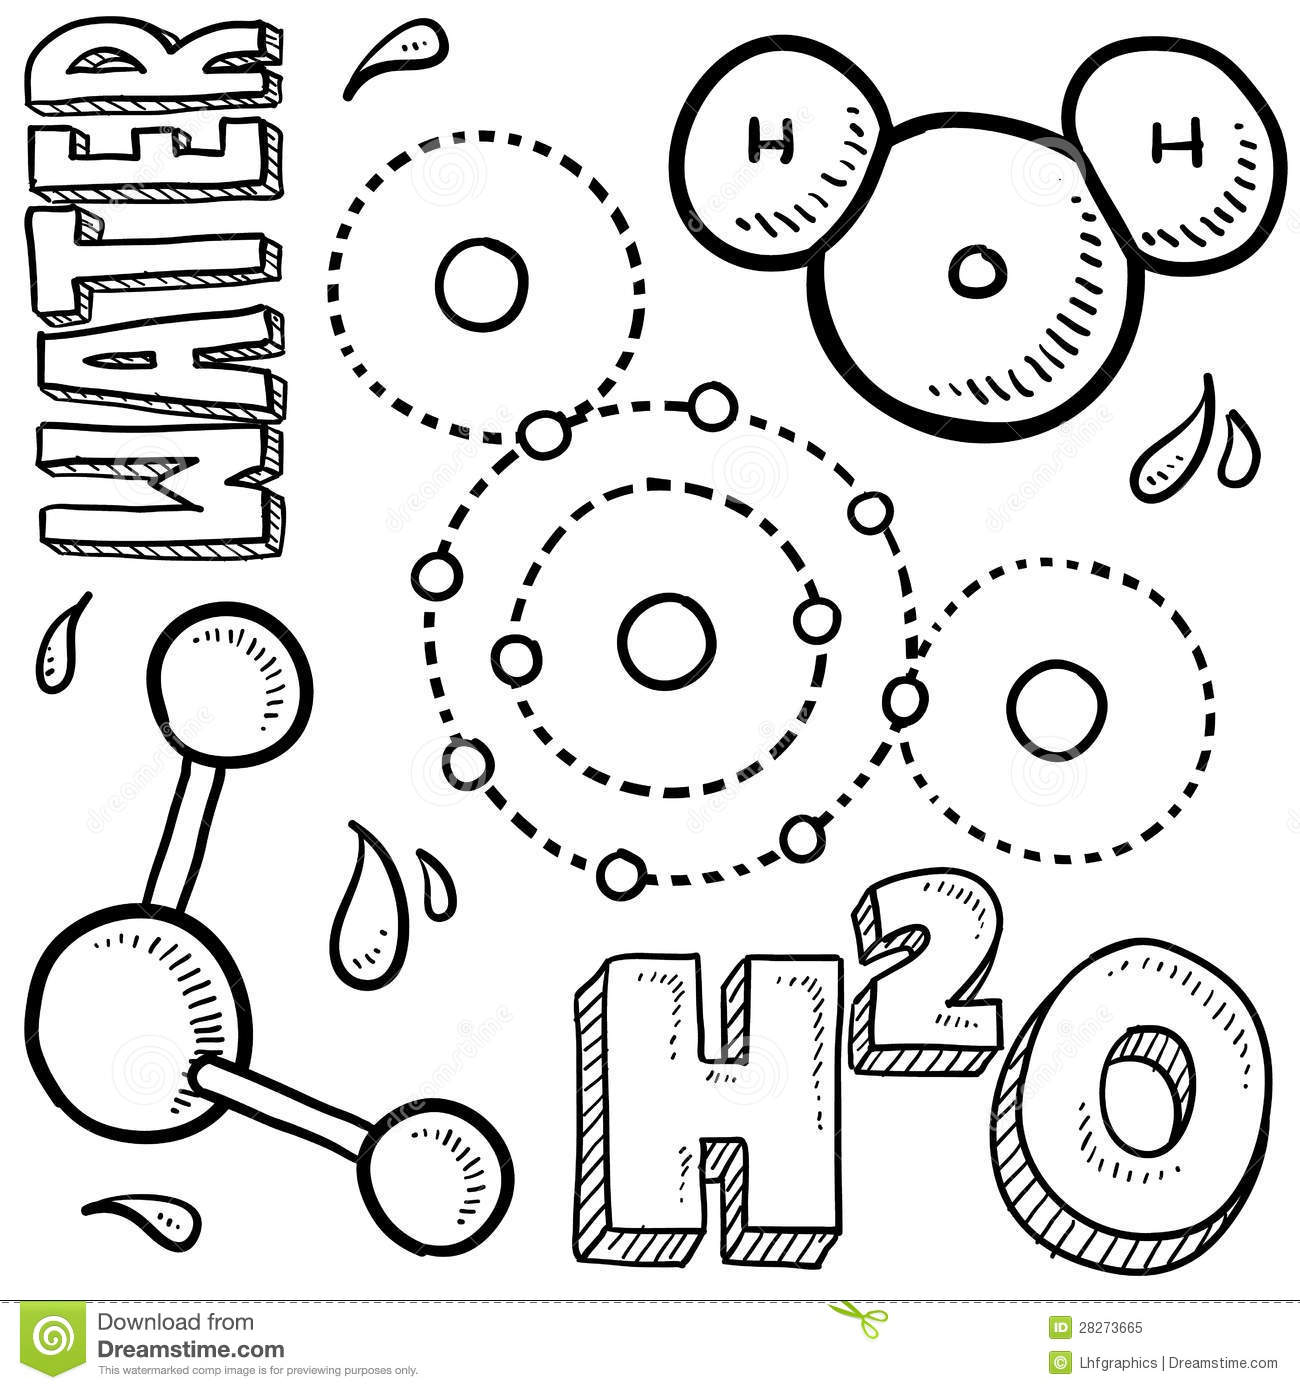 diagram of a molecule of water